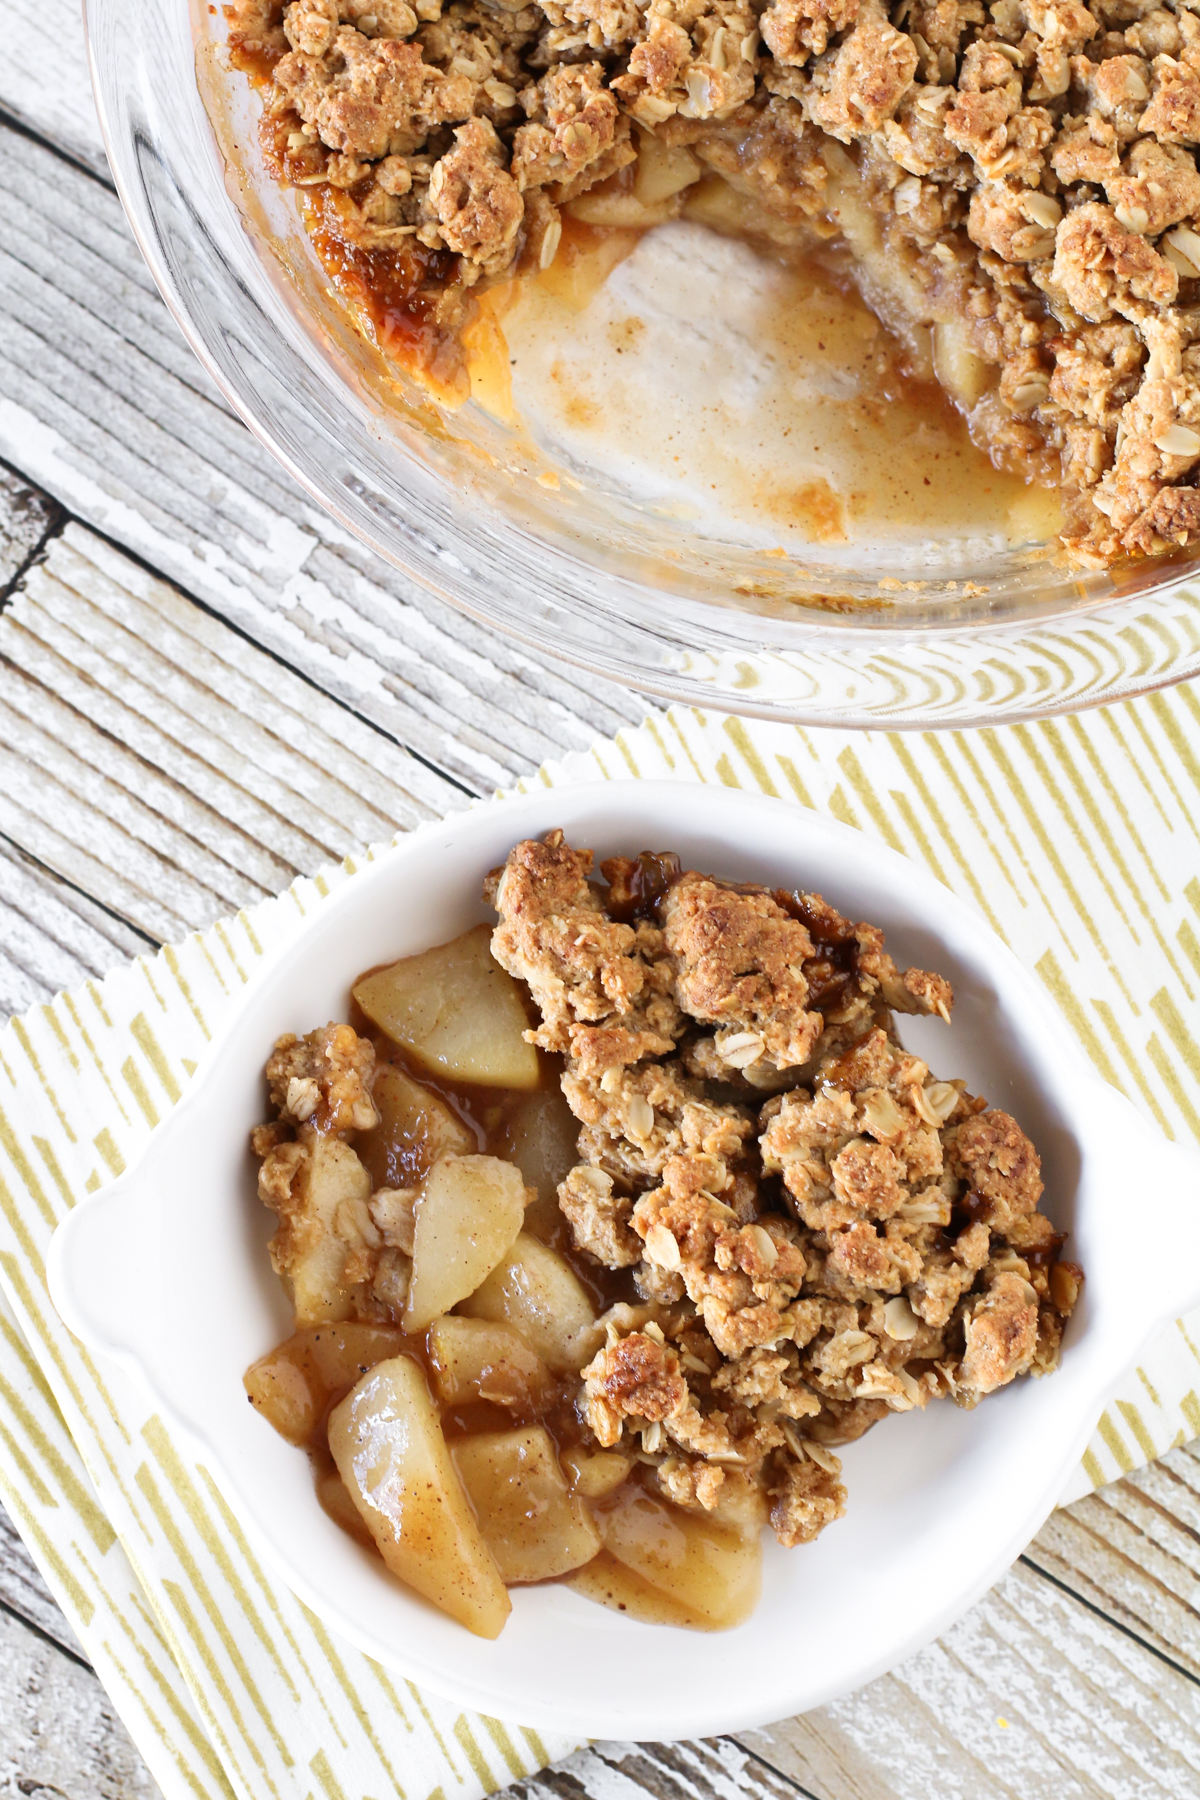 Gluten Free Vegan Chai Spiced Pear Crisp. Warm chai spices, sweet pears and a refined sugar free crumb topping. A lovely fall dessert!